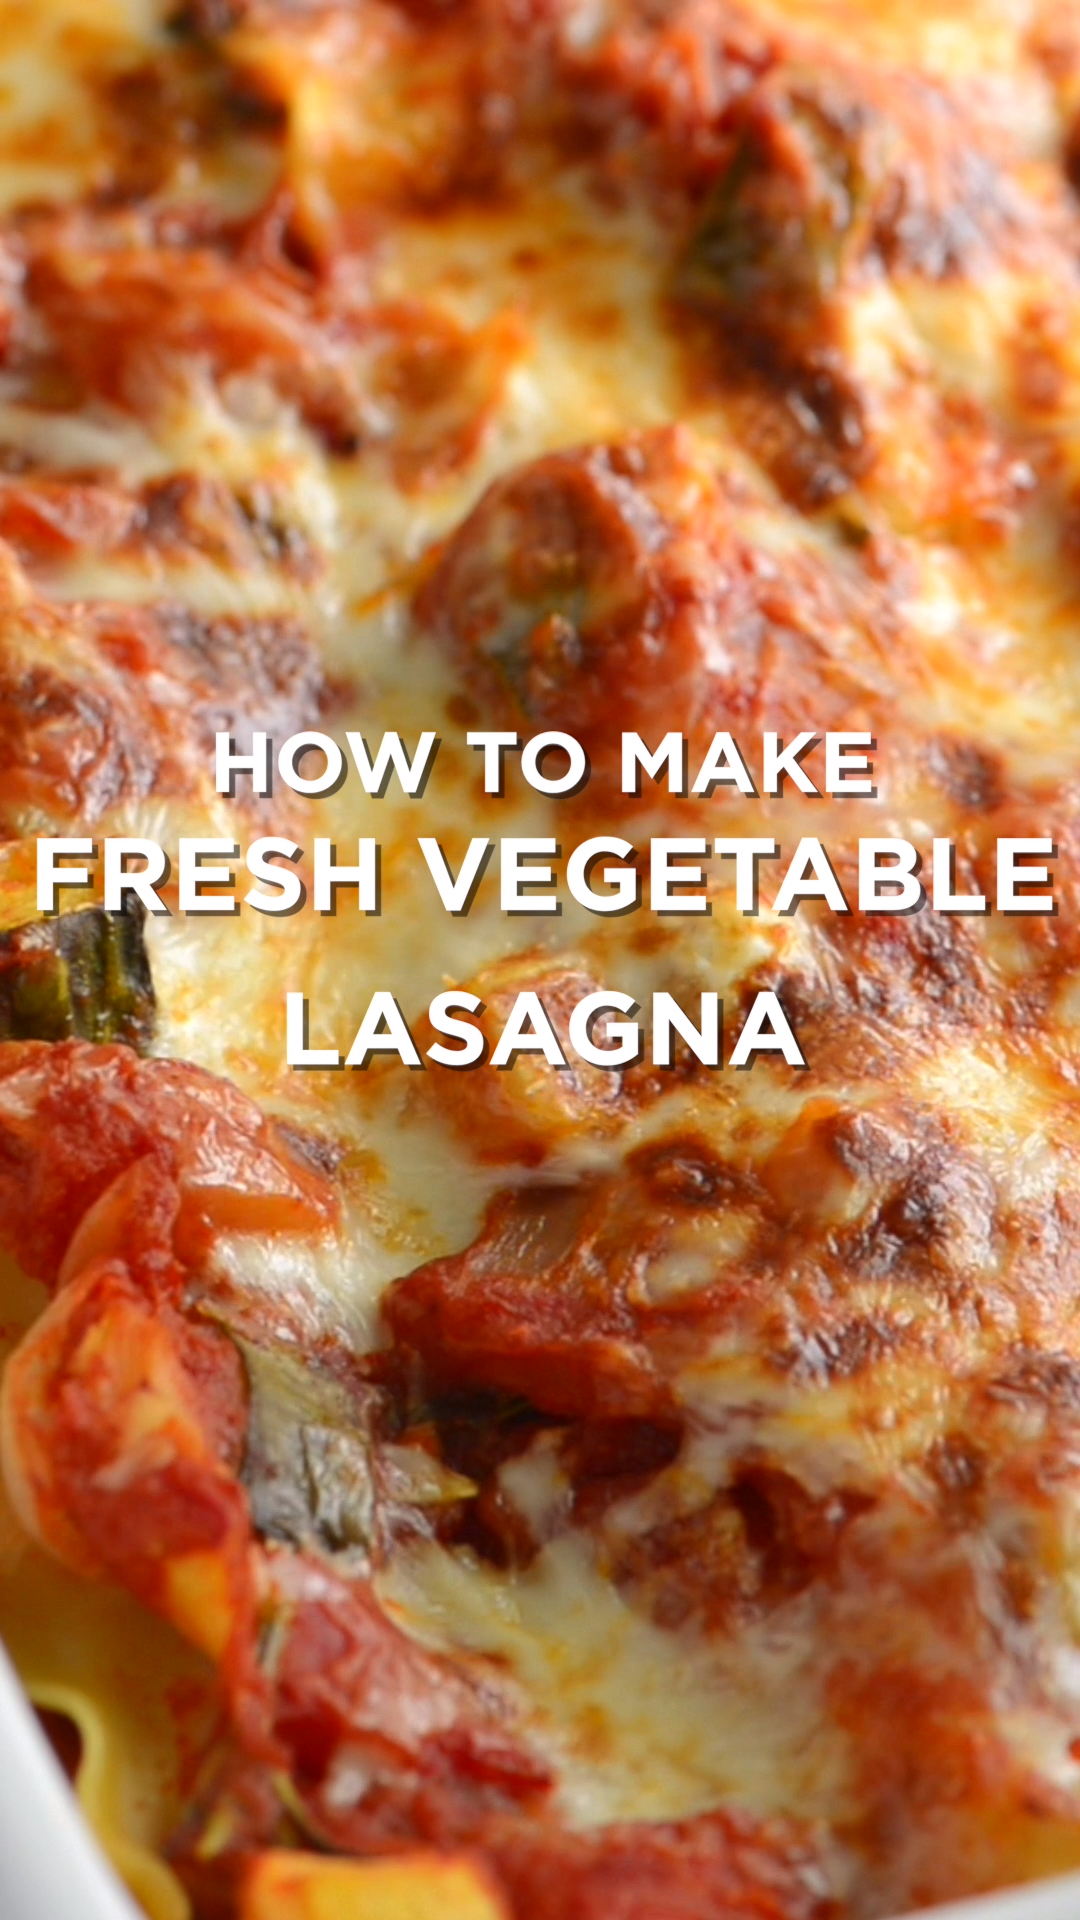 Easy Vegetable Lasagna Recipe This vegetable lasagna is a reader favorite! Tender vegetables, a light tomato sauce, and lots of cheese make this the best vegetable lasagna recipe, ever.